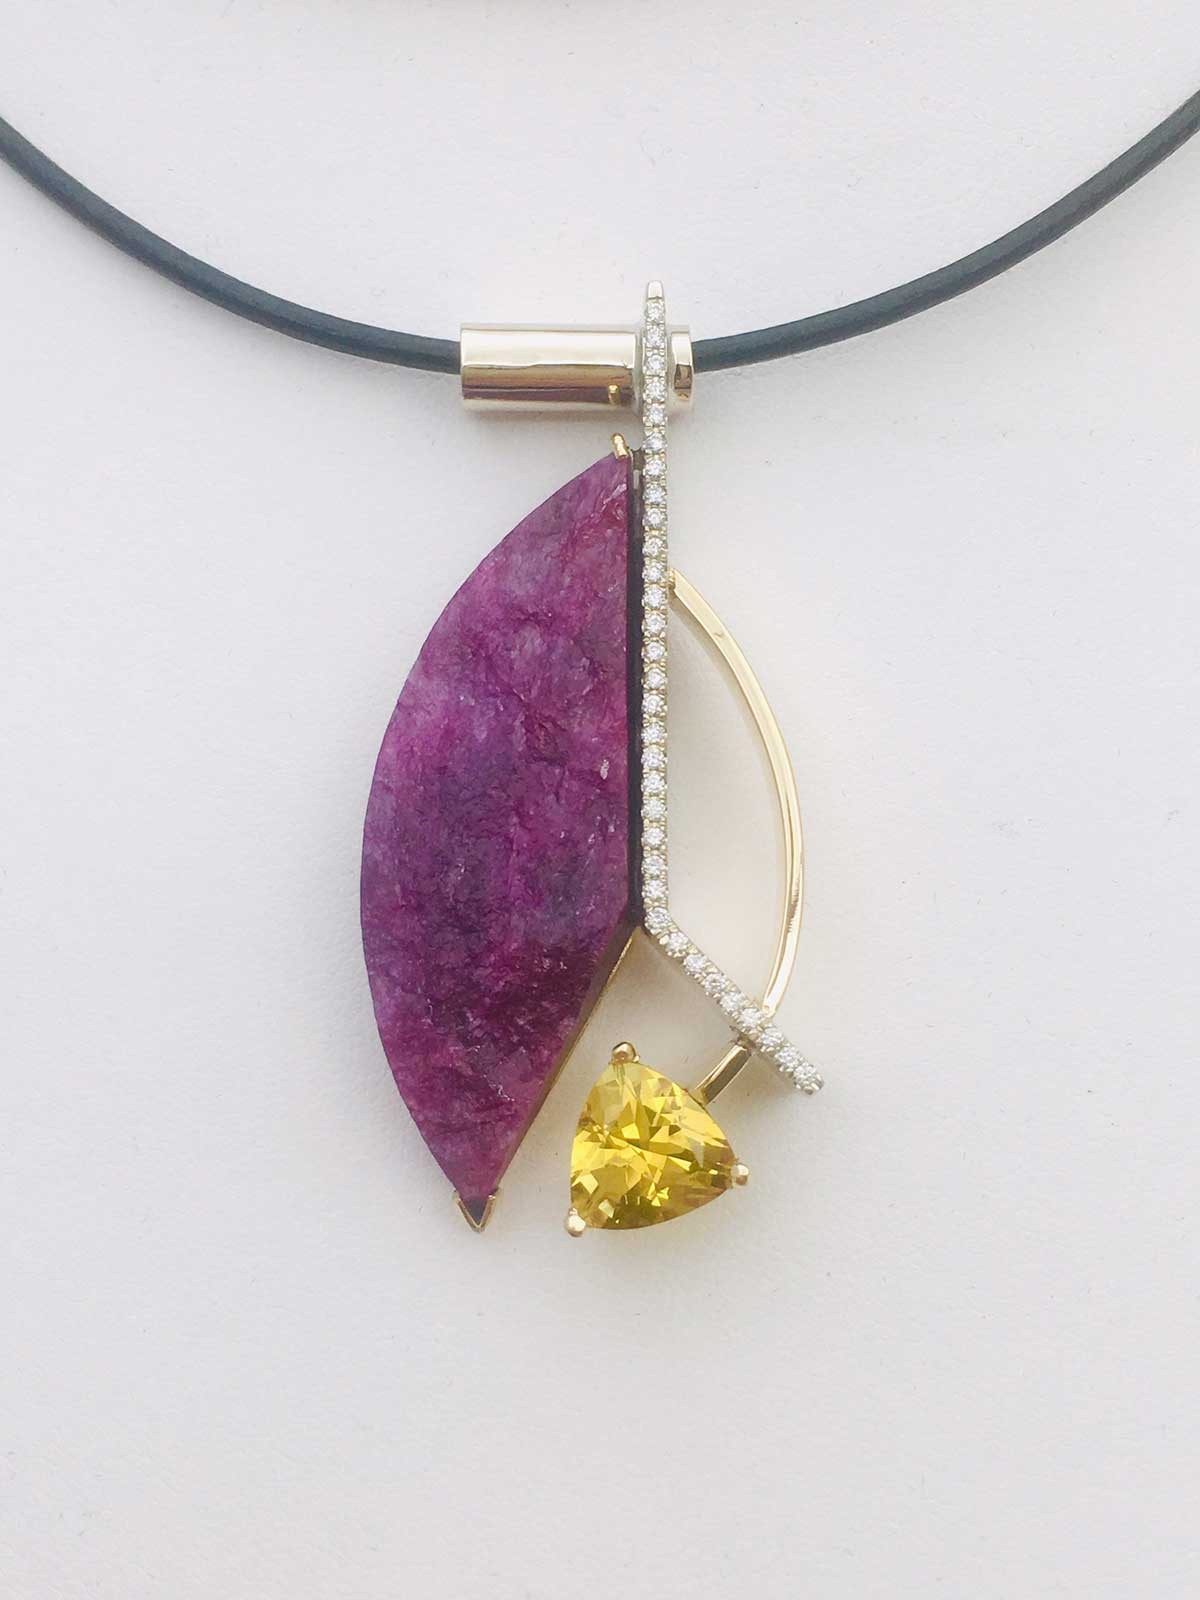 Custom designed pendant with an African, natural Ruby crystal accented with Pave Diamonds and a trillion-cut Golden Heliodor. Crafted in 14k yellow and white gold